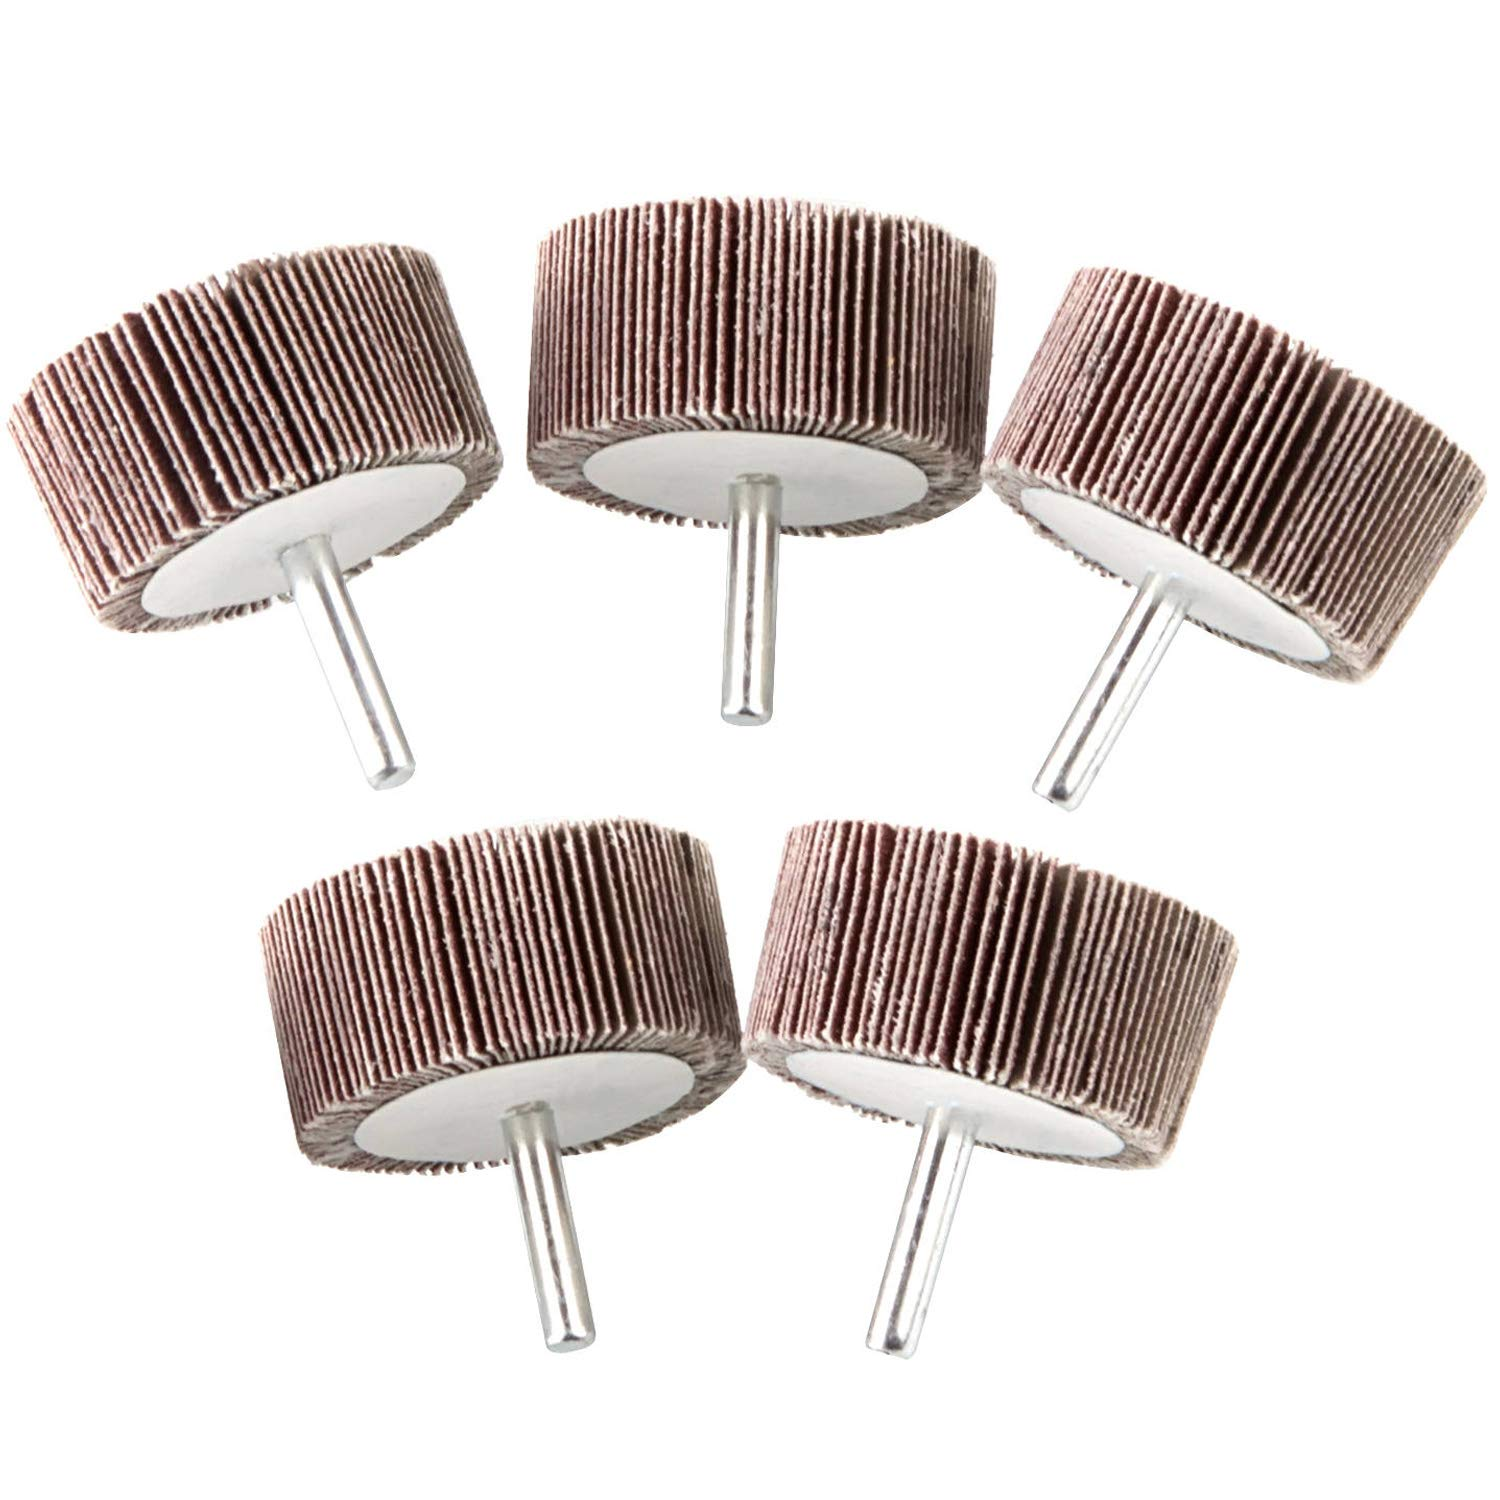 5 Pack 2x1x 1 4 inch Shank Grit Aluminum Wheels Popular brand in the world Flap Mounted 80 All items in the store